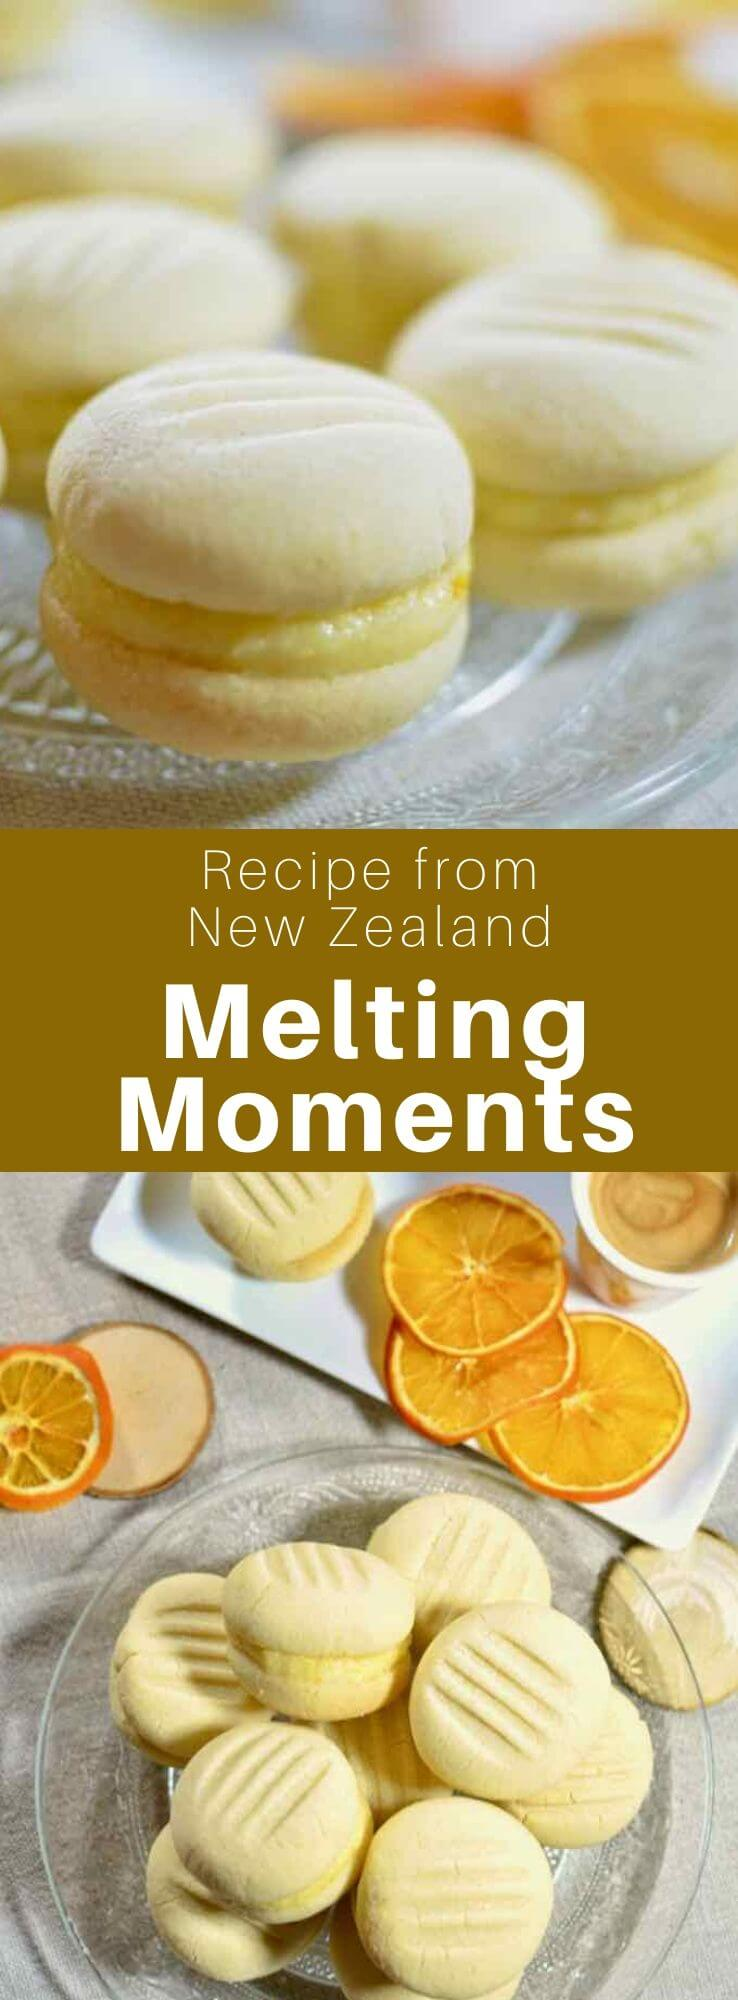 Melting moments are small shortbread cookies with a cream filling, frequently flavored with lemon or orange, that are popular in New Zealand. #NewZealand #WorldCuisine #196flavors